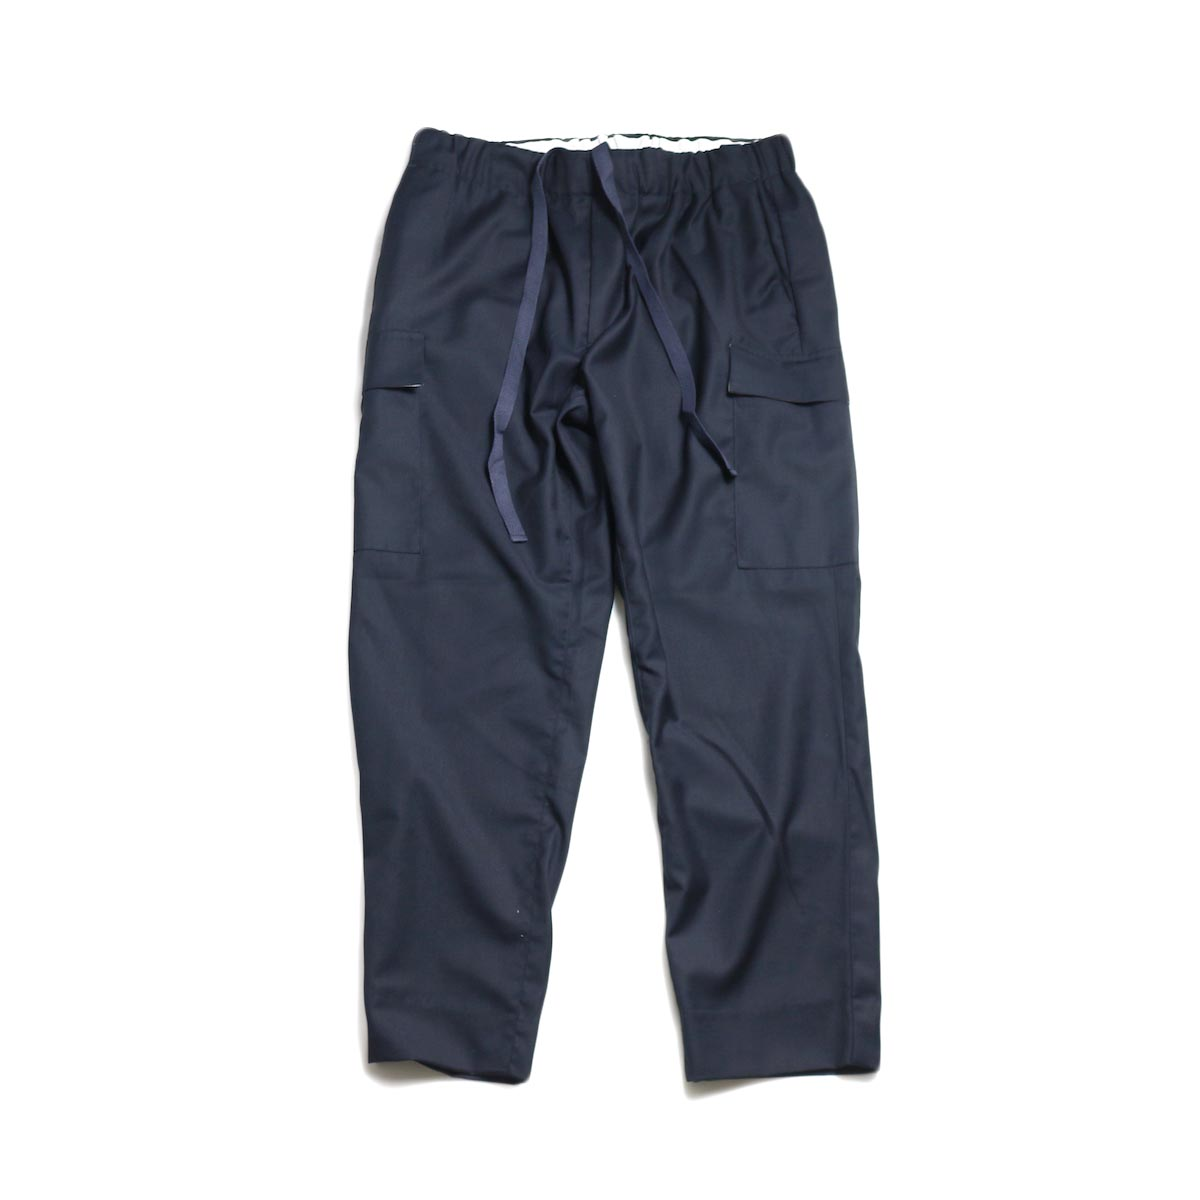 FUTURE PRIMITIVE / FP EASY CARGO PANTS -Navy